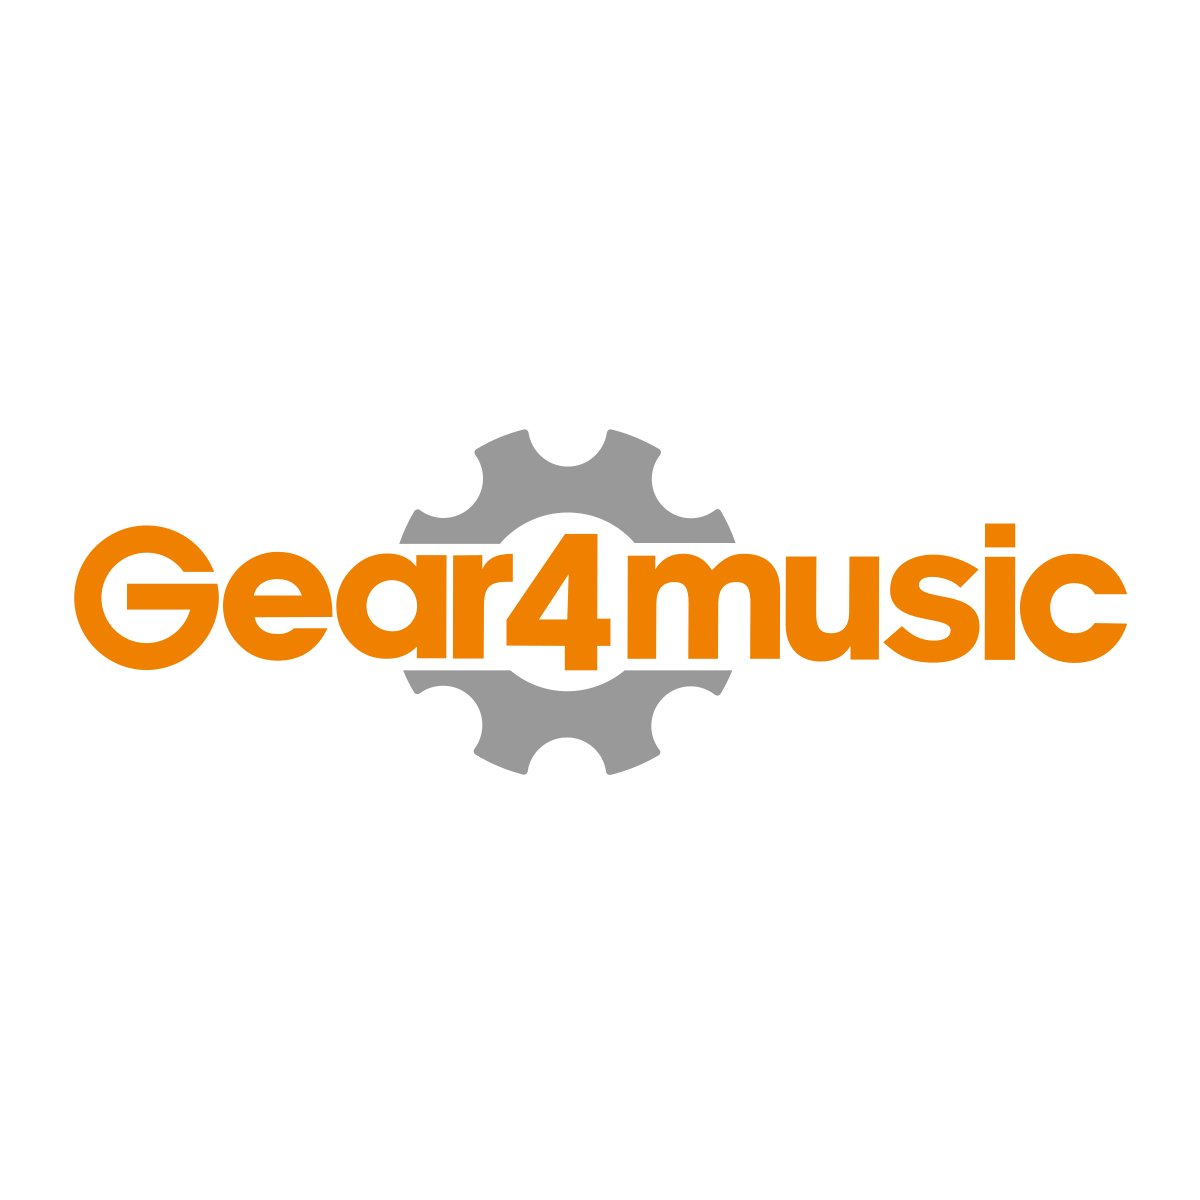 Tenor Saxophone by Gear4music, Gold at Gear4music